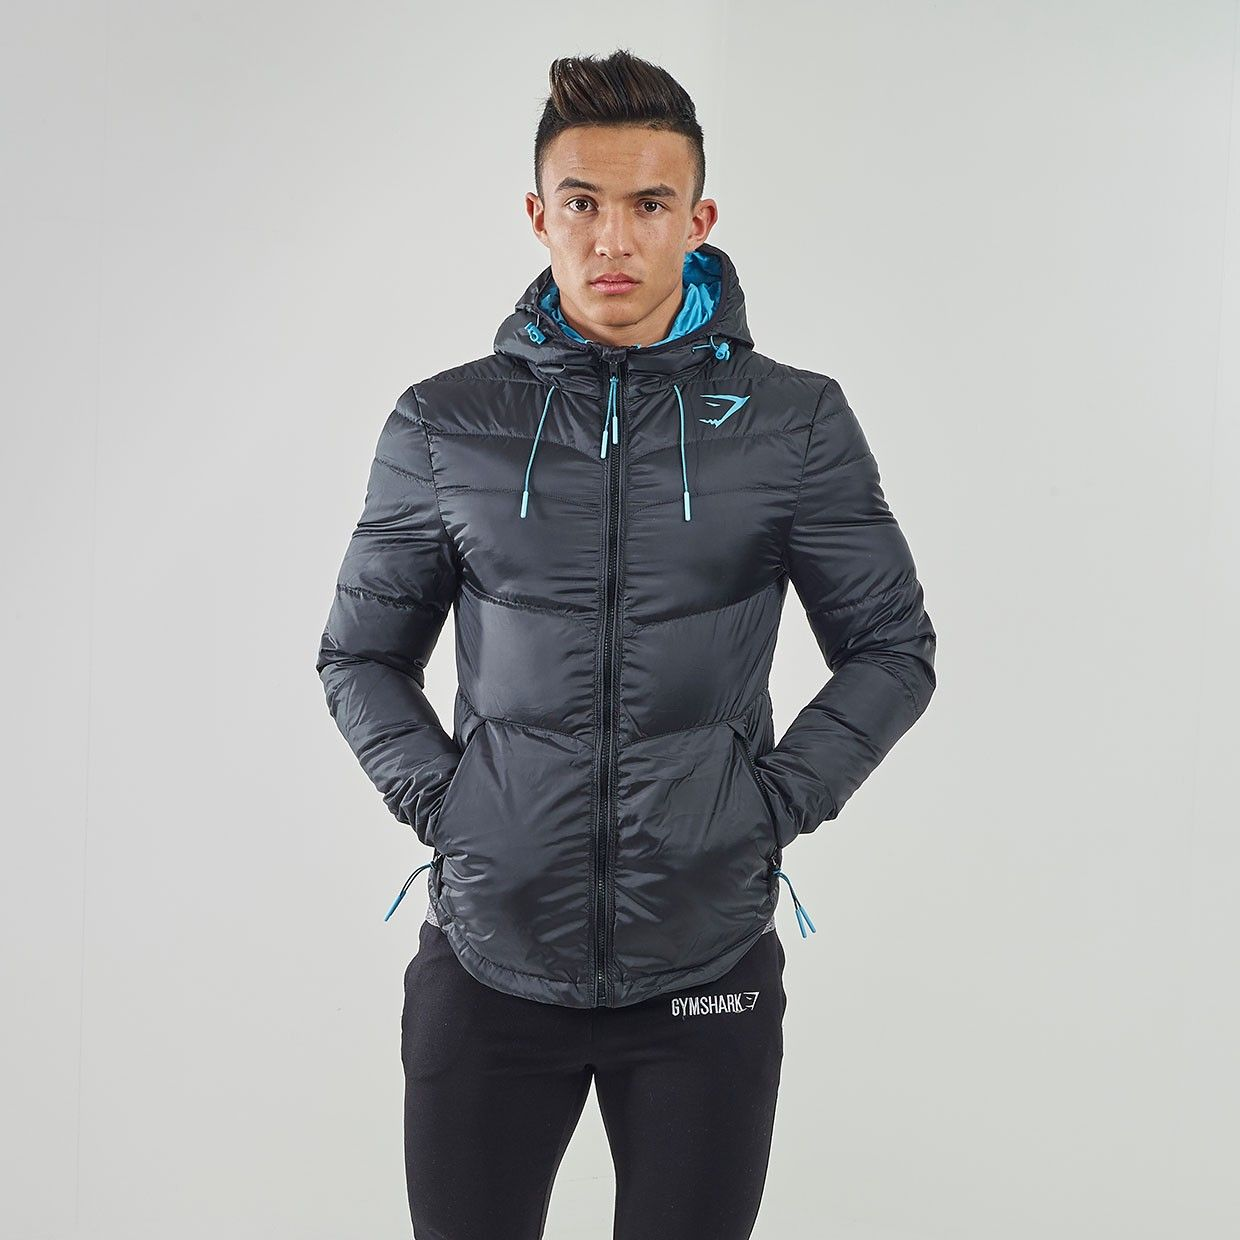 Fitted Sector Puffer Jacket - Black